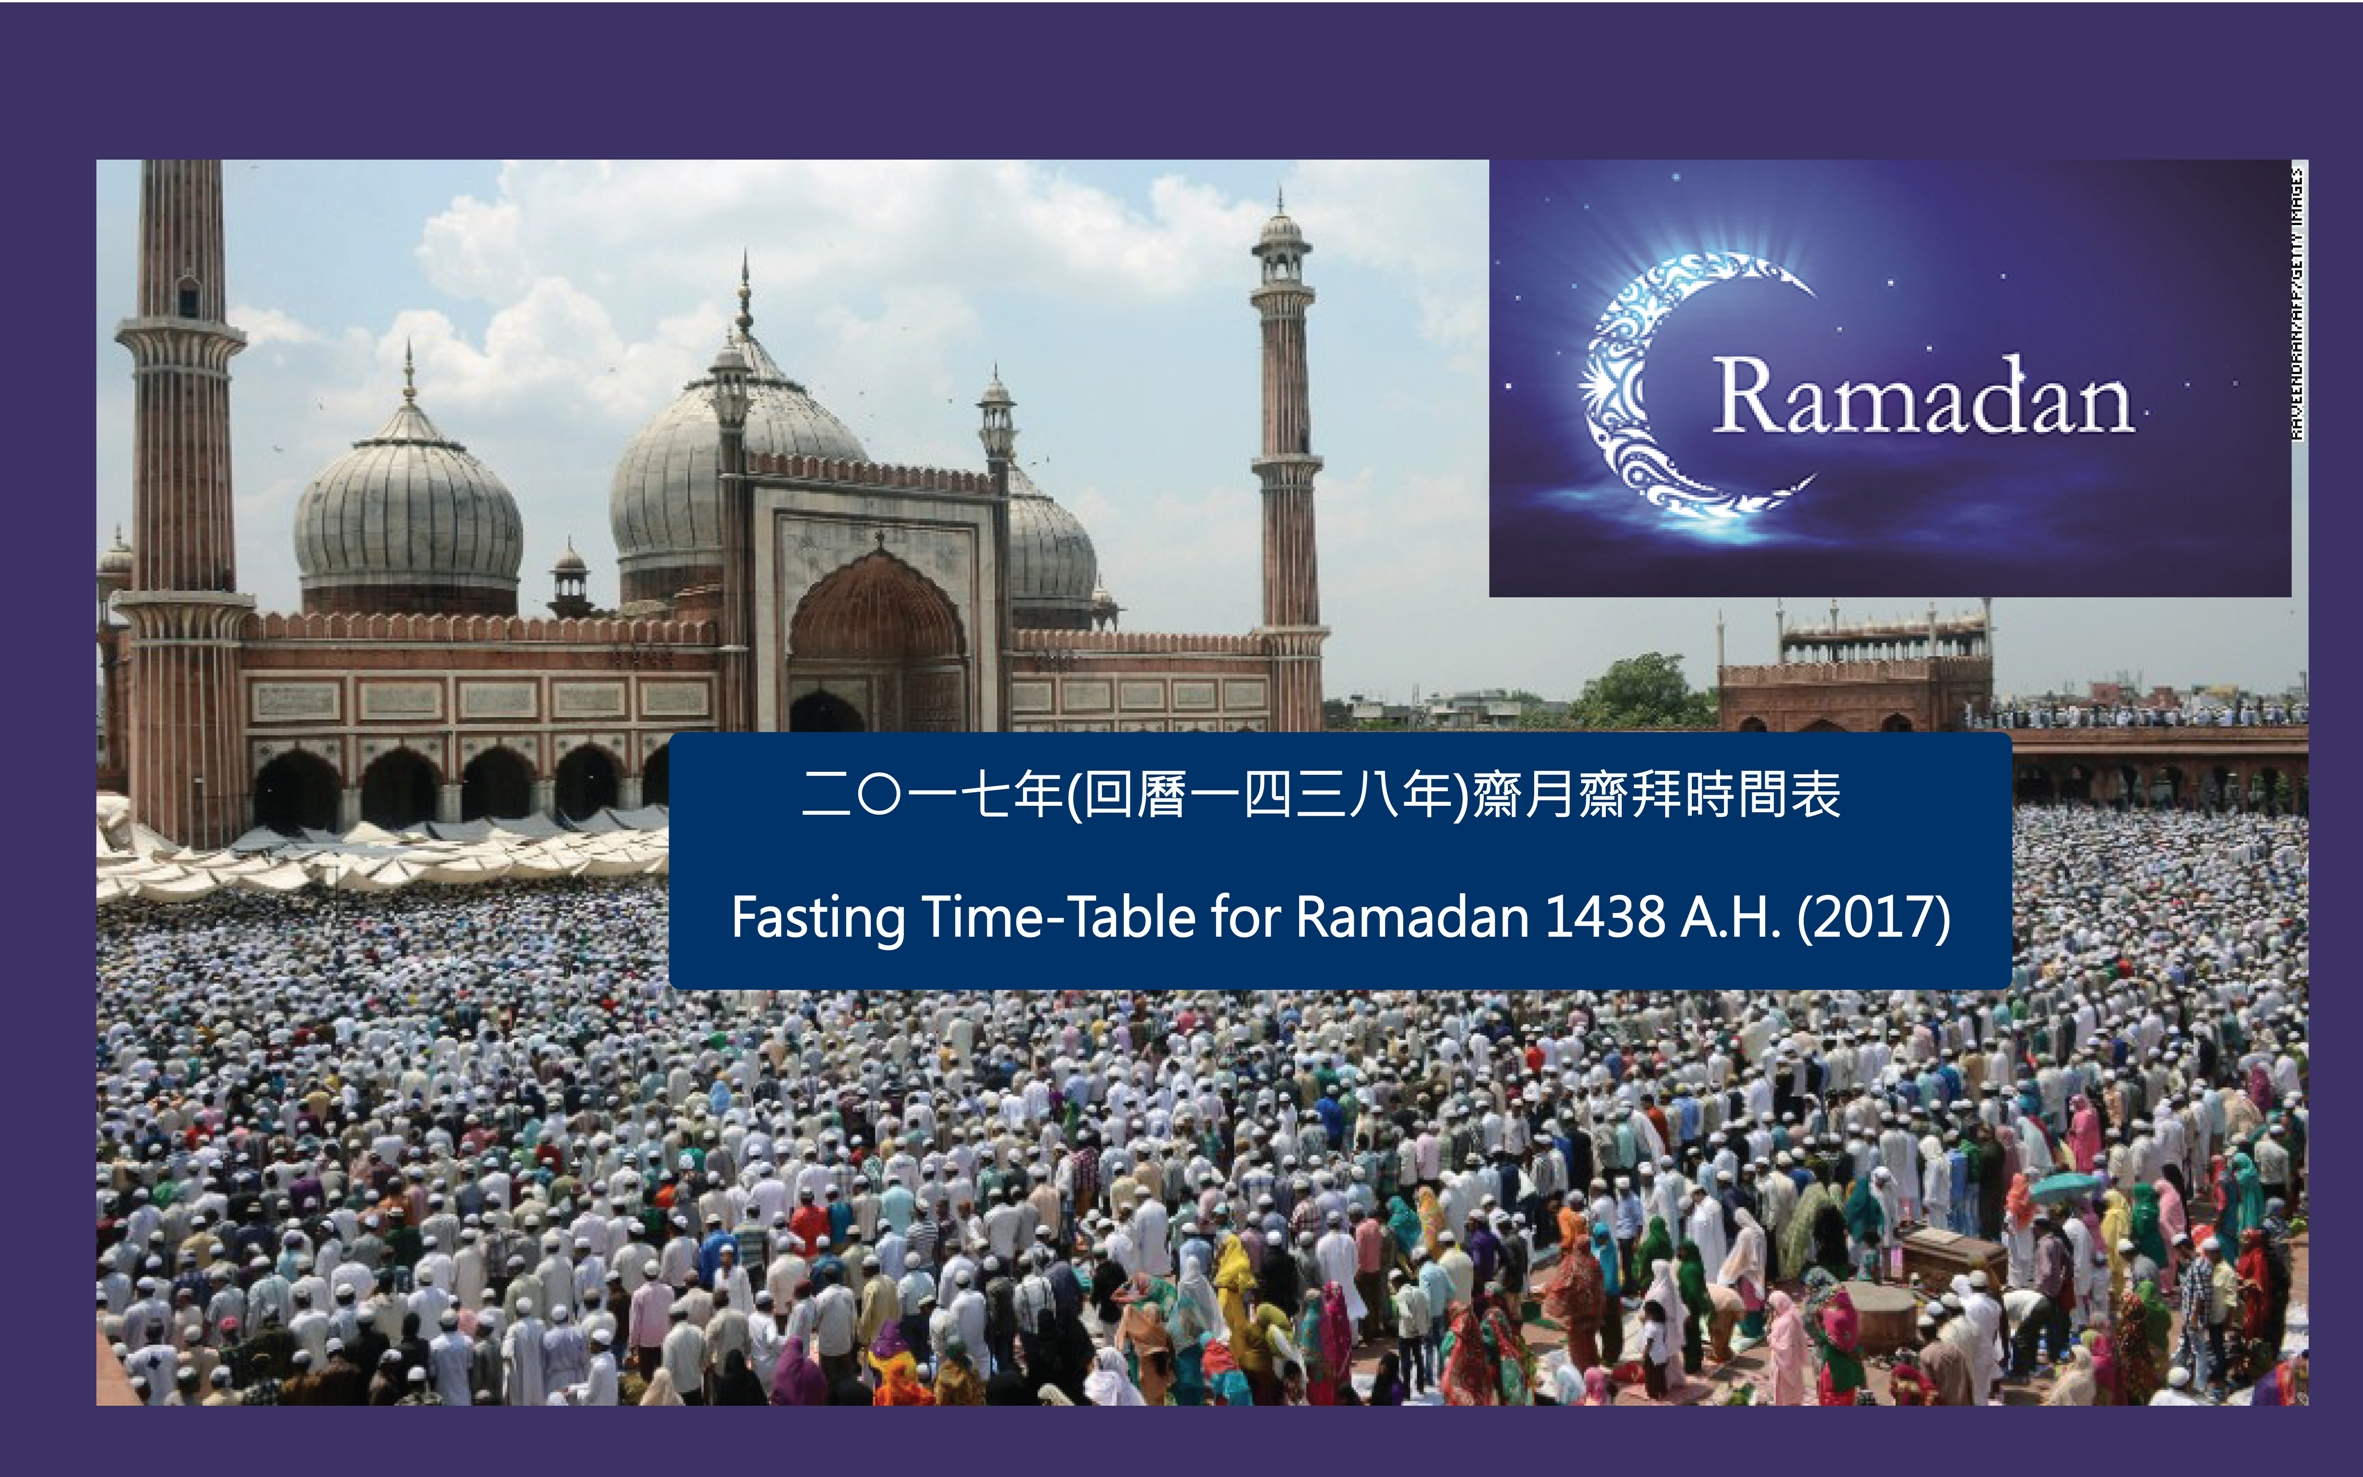 Fasting Time-Table for Ramadan 1438 A.H. (2017)